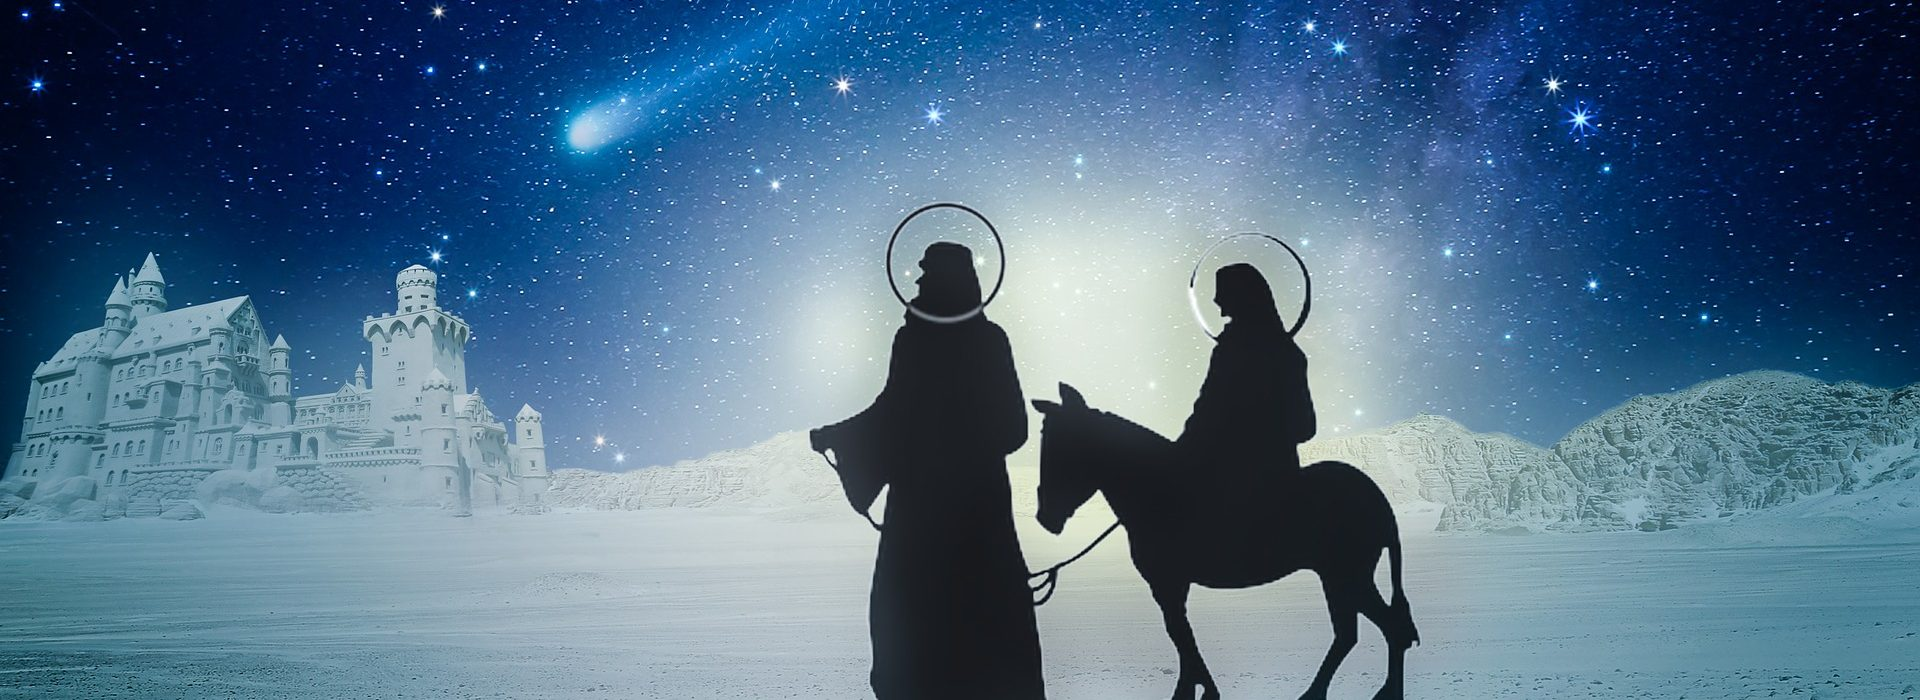 Rejoice greatly, O daughter of Zion; shout, O daughter of Jerusalem: behold, thy King cometh unto thee: he [is] just, and having salvation; lowly, and riding upon an ass, and upon a colt the foal of an ass.